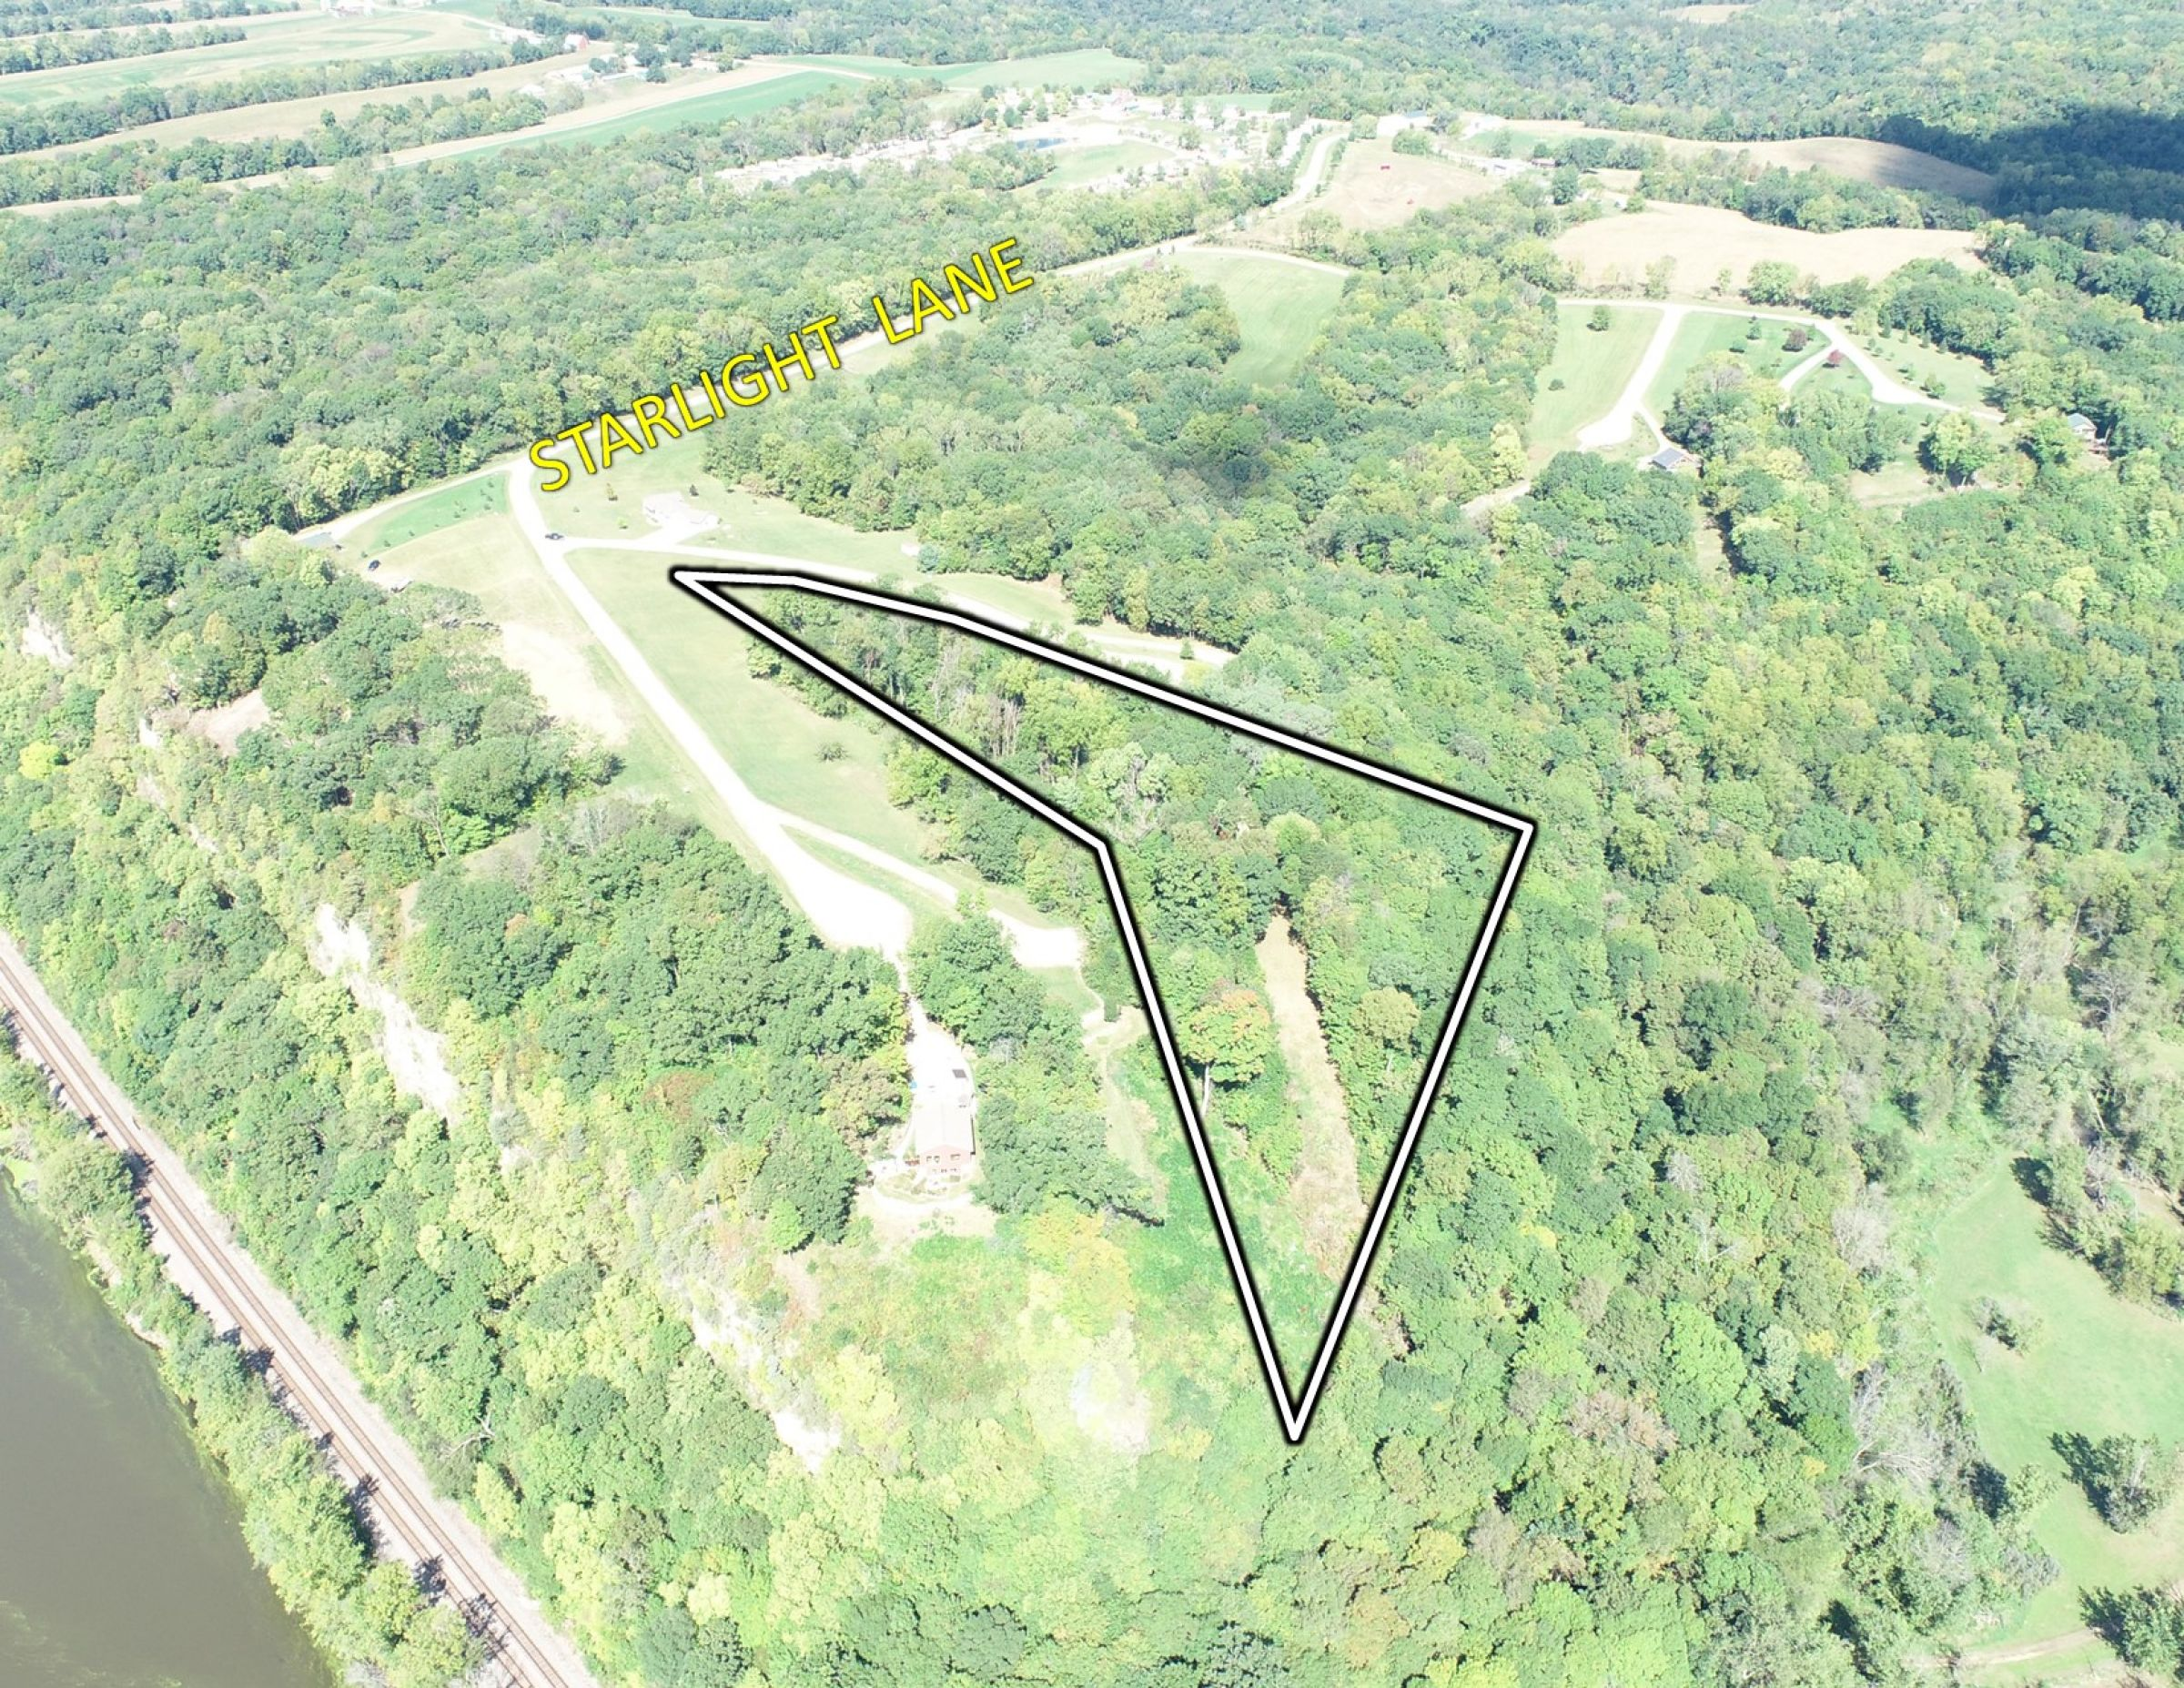 grant-county-wisconsin-4-acres-listing-number-15772-1-2021-09-23-015408.jpg